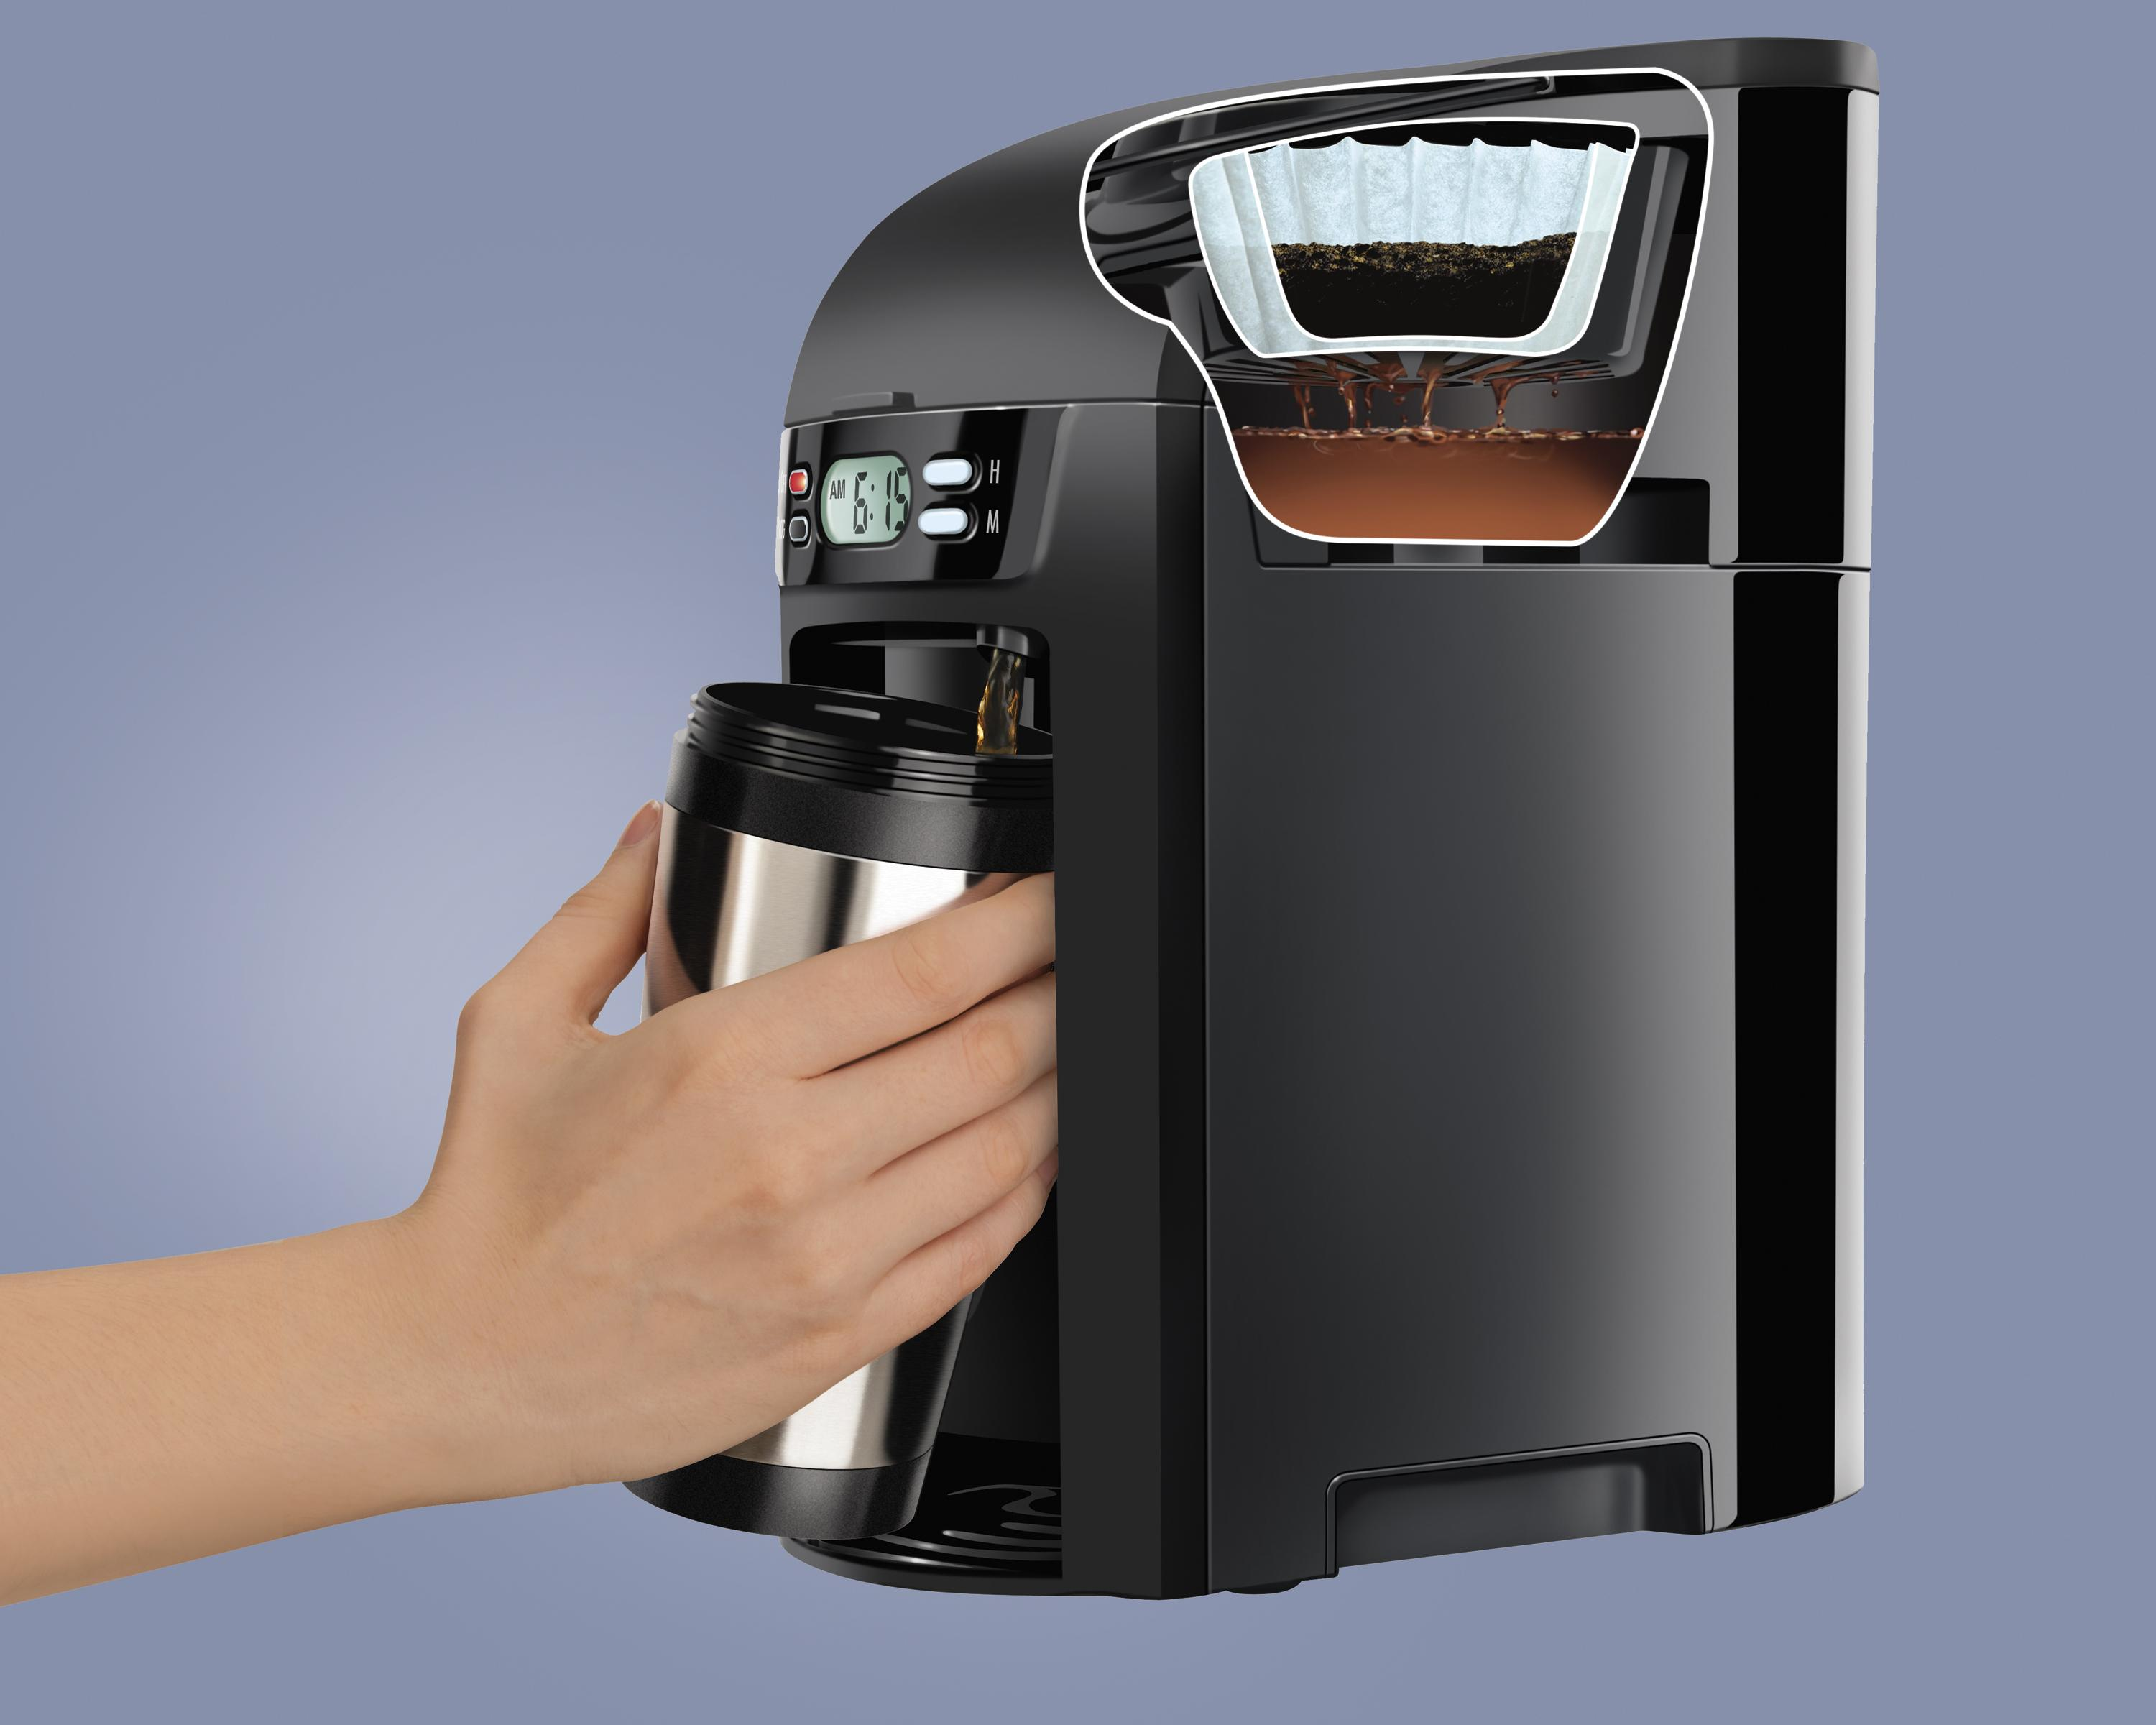 Best Coffee Maker No Mold : Amazon.com: Hamilton Beach 6-Cup Coffee Maker, Programmable Brewstation Dispensing Coffee ...